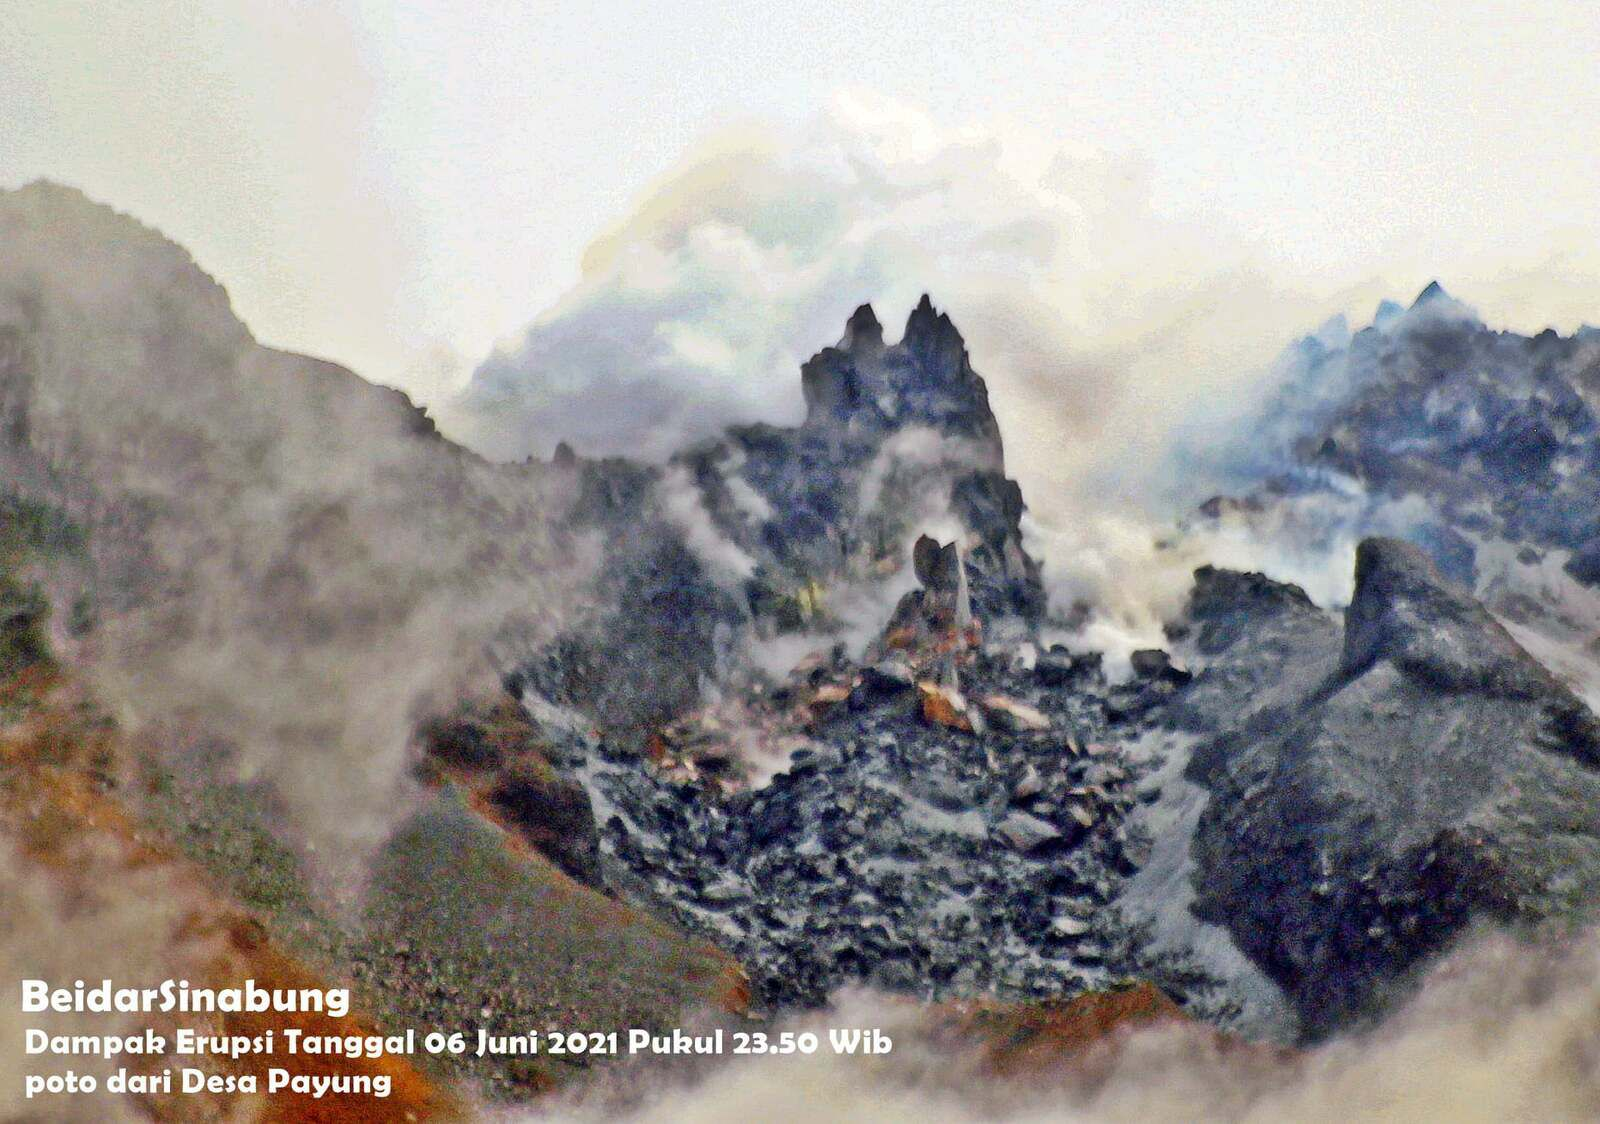 Sinabung - the dome after eruption of June 6 - photo 08.06.2021 by Firdaus Surbakti from Desa Payung / via Beidar Sinabung